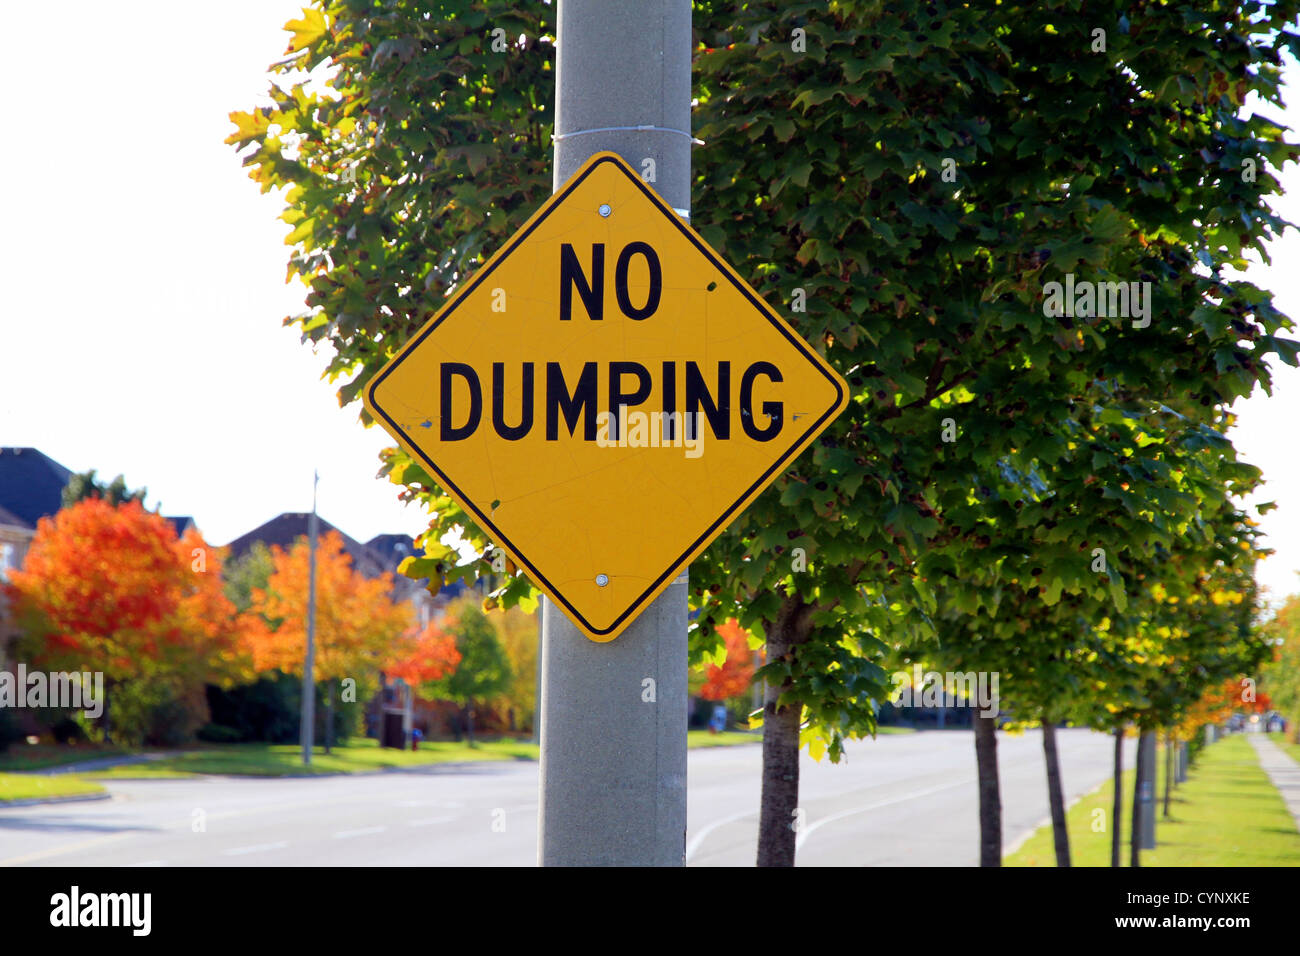 No Dumping Sign - Stock Image